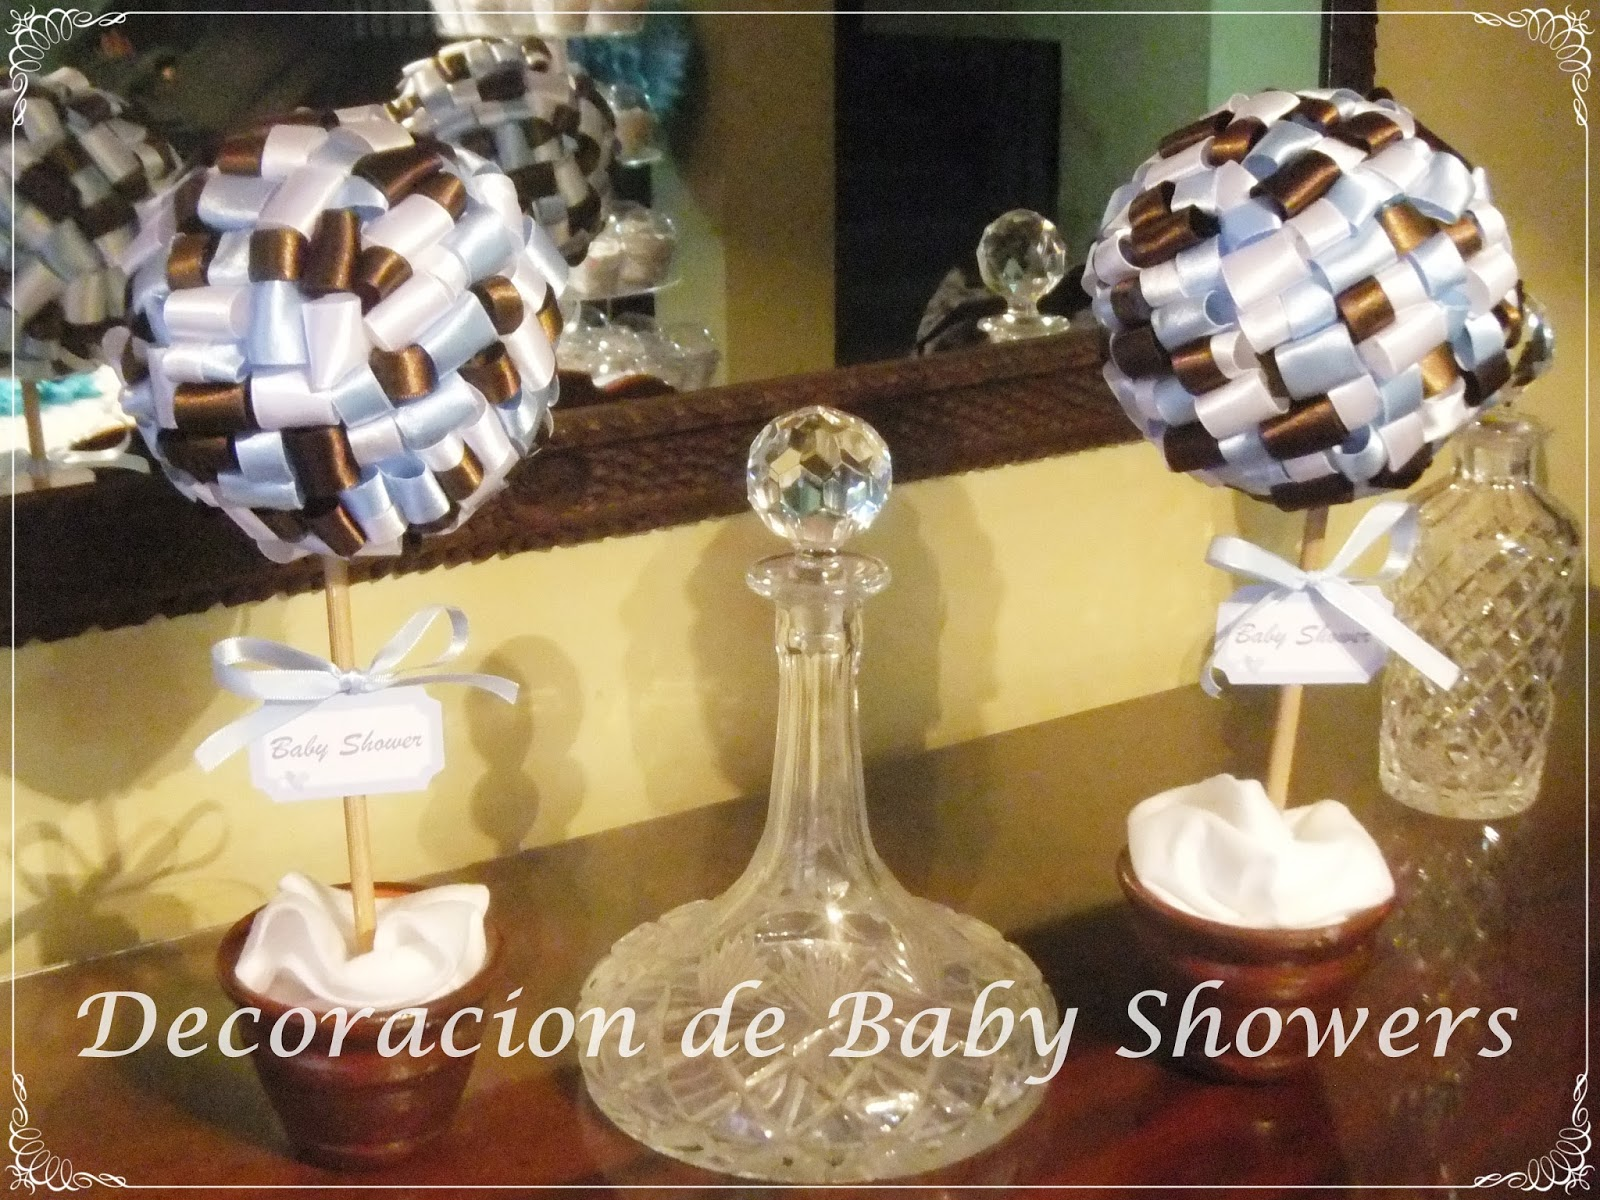 Decoracion de Baby Shower